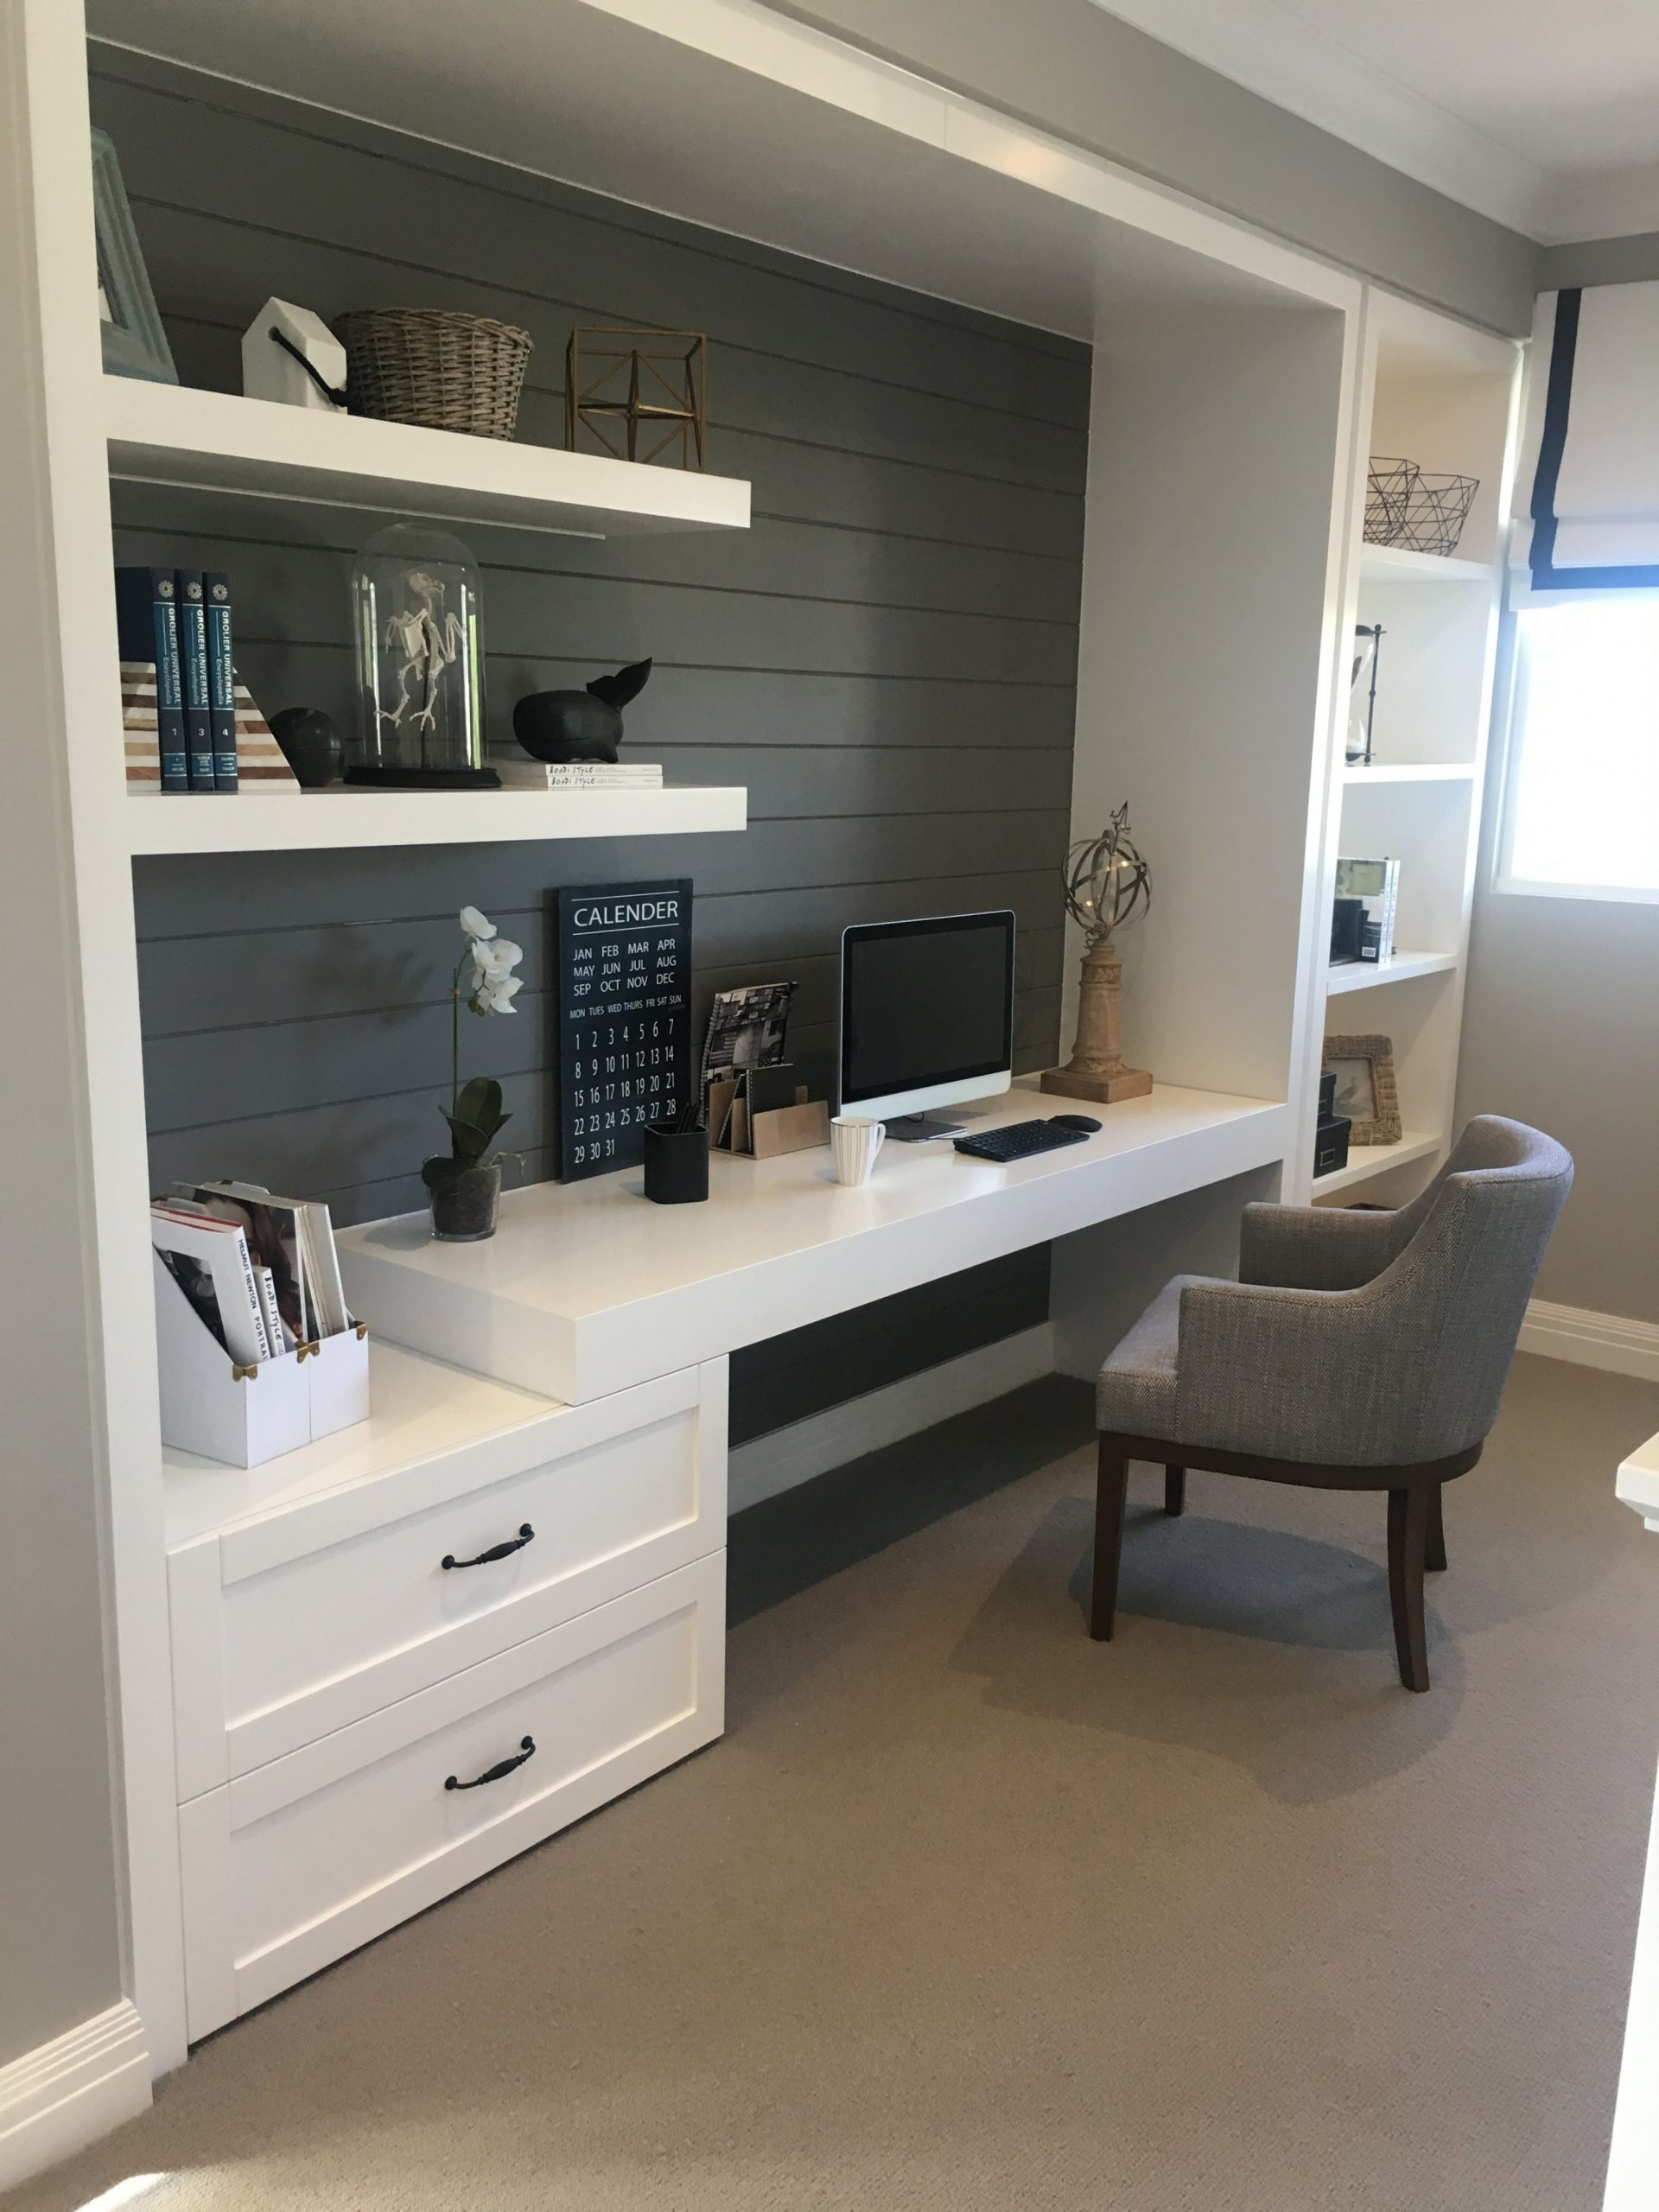 Working From Home – Five Home Office Ideas for Running a Business  - Home Office Ideas With Storage